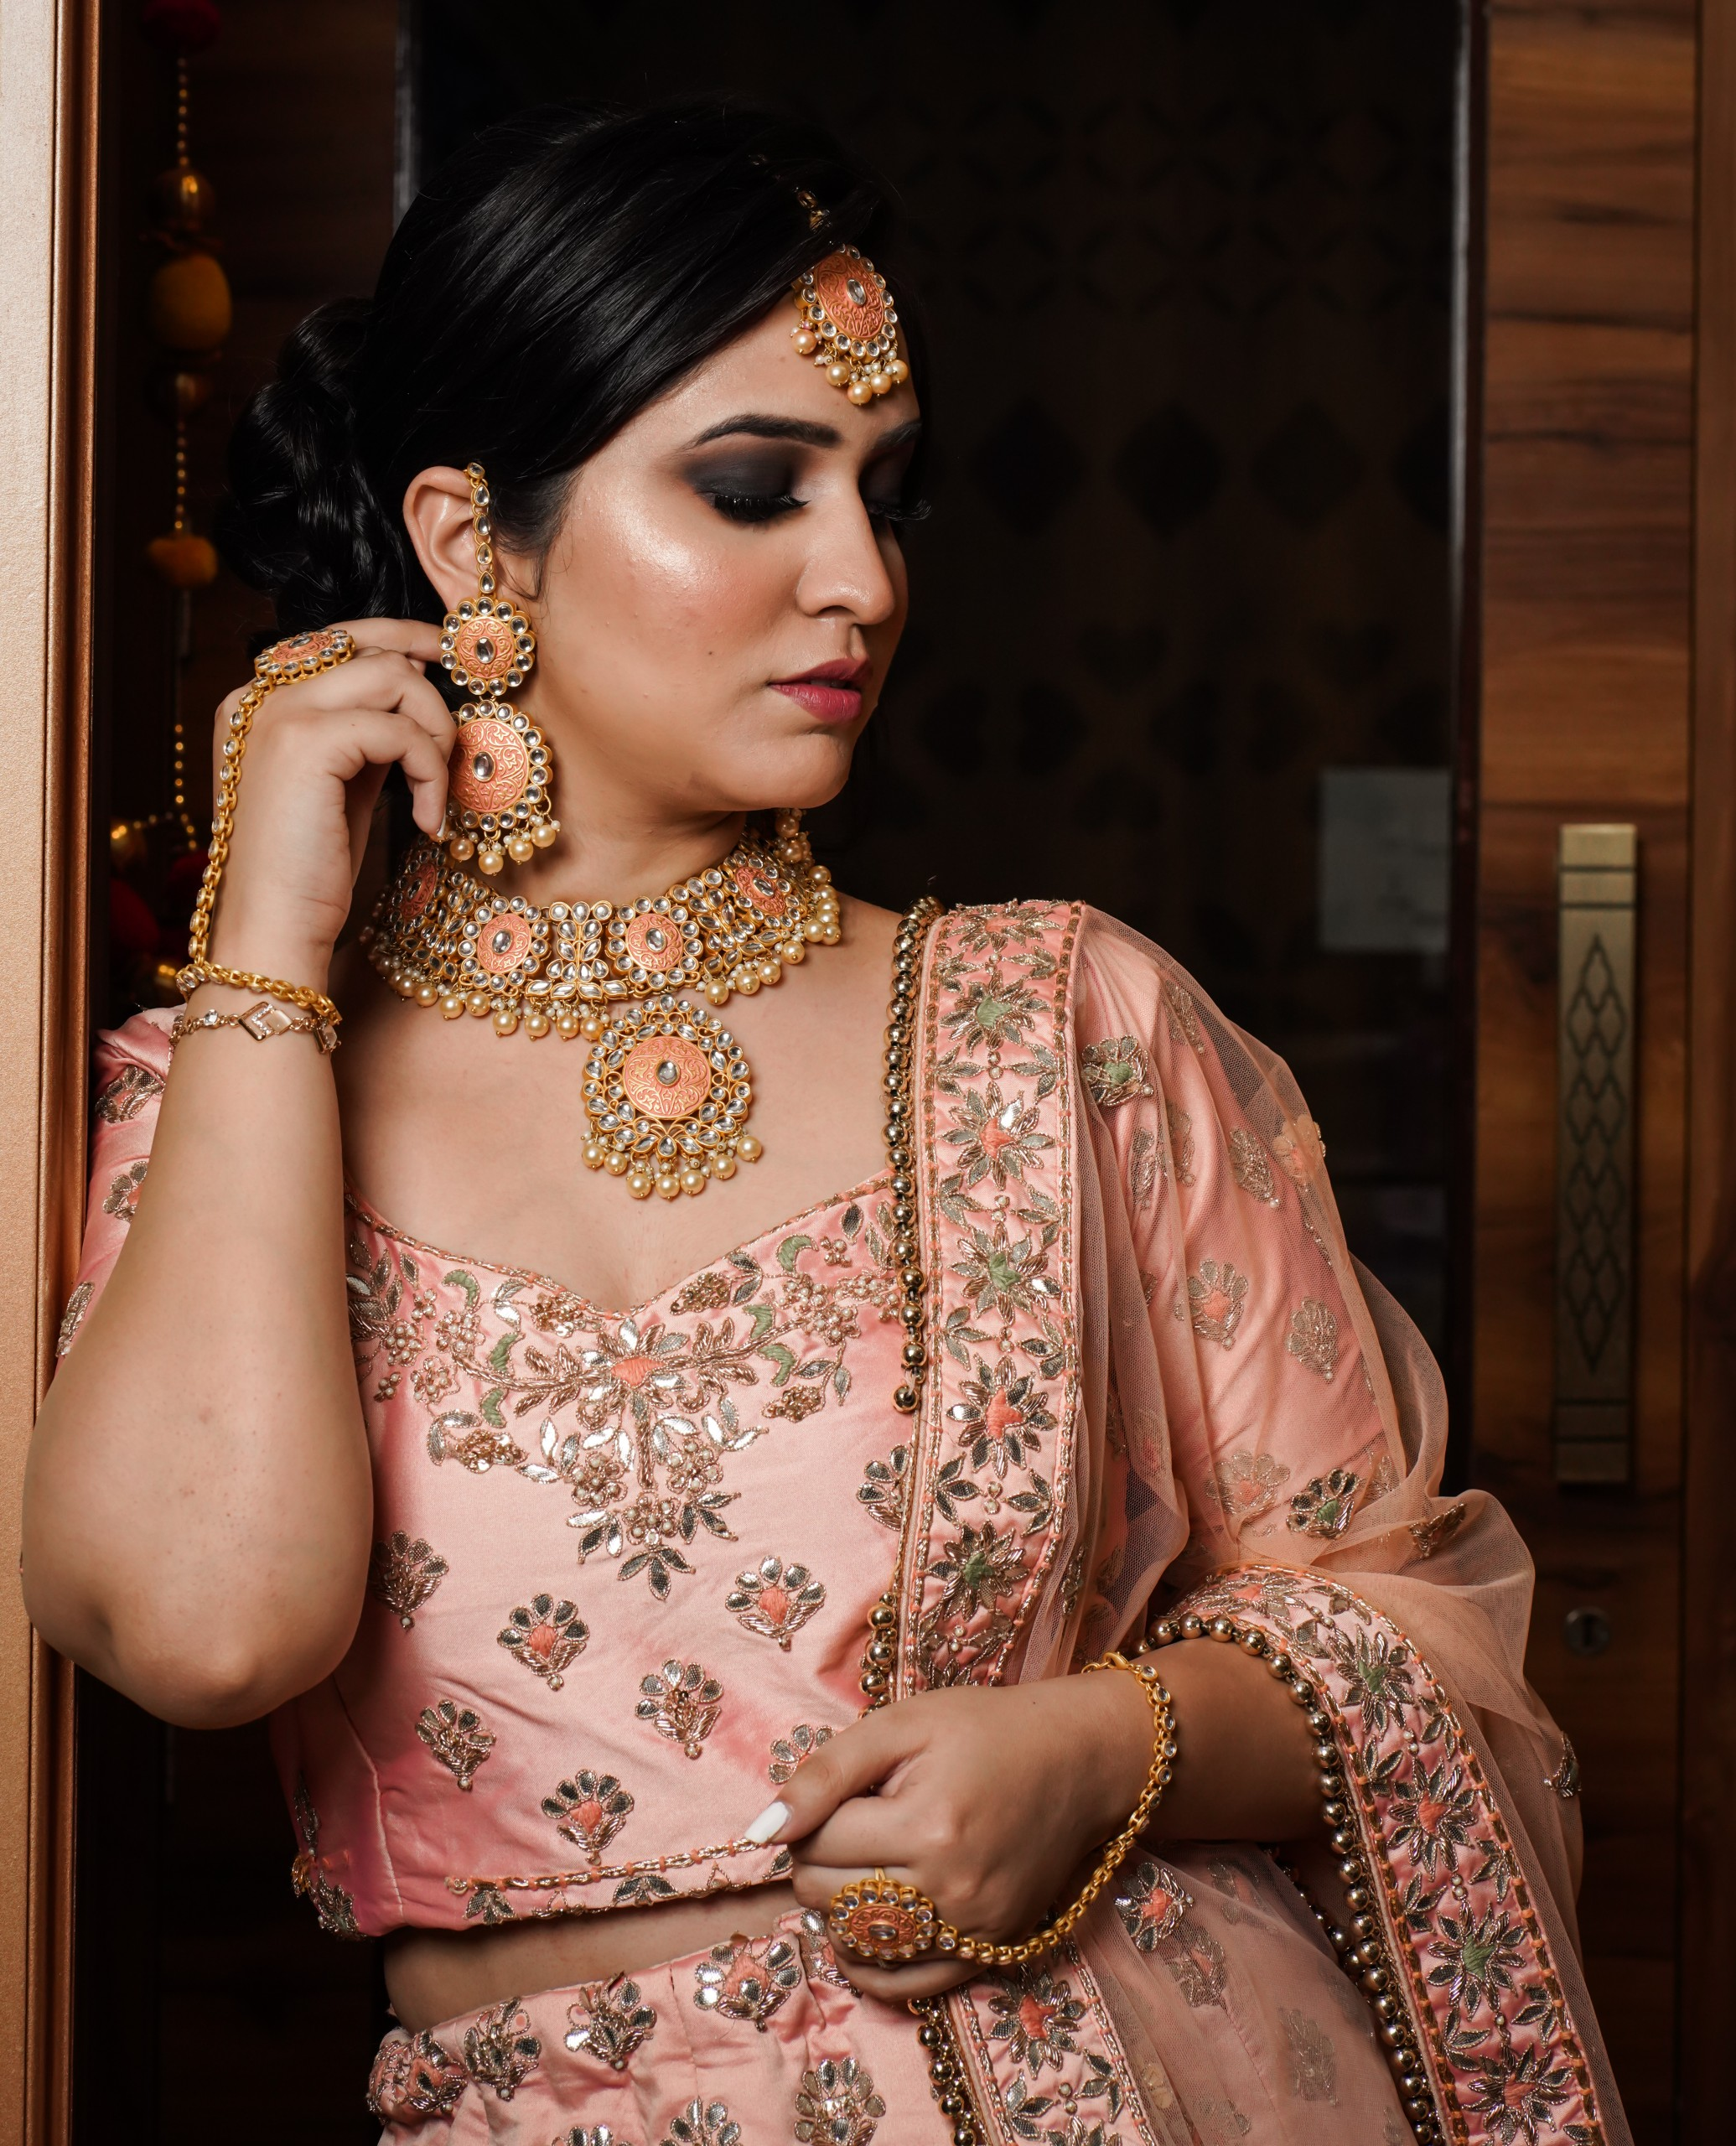 Indian bride dress and jewelry with model